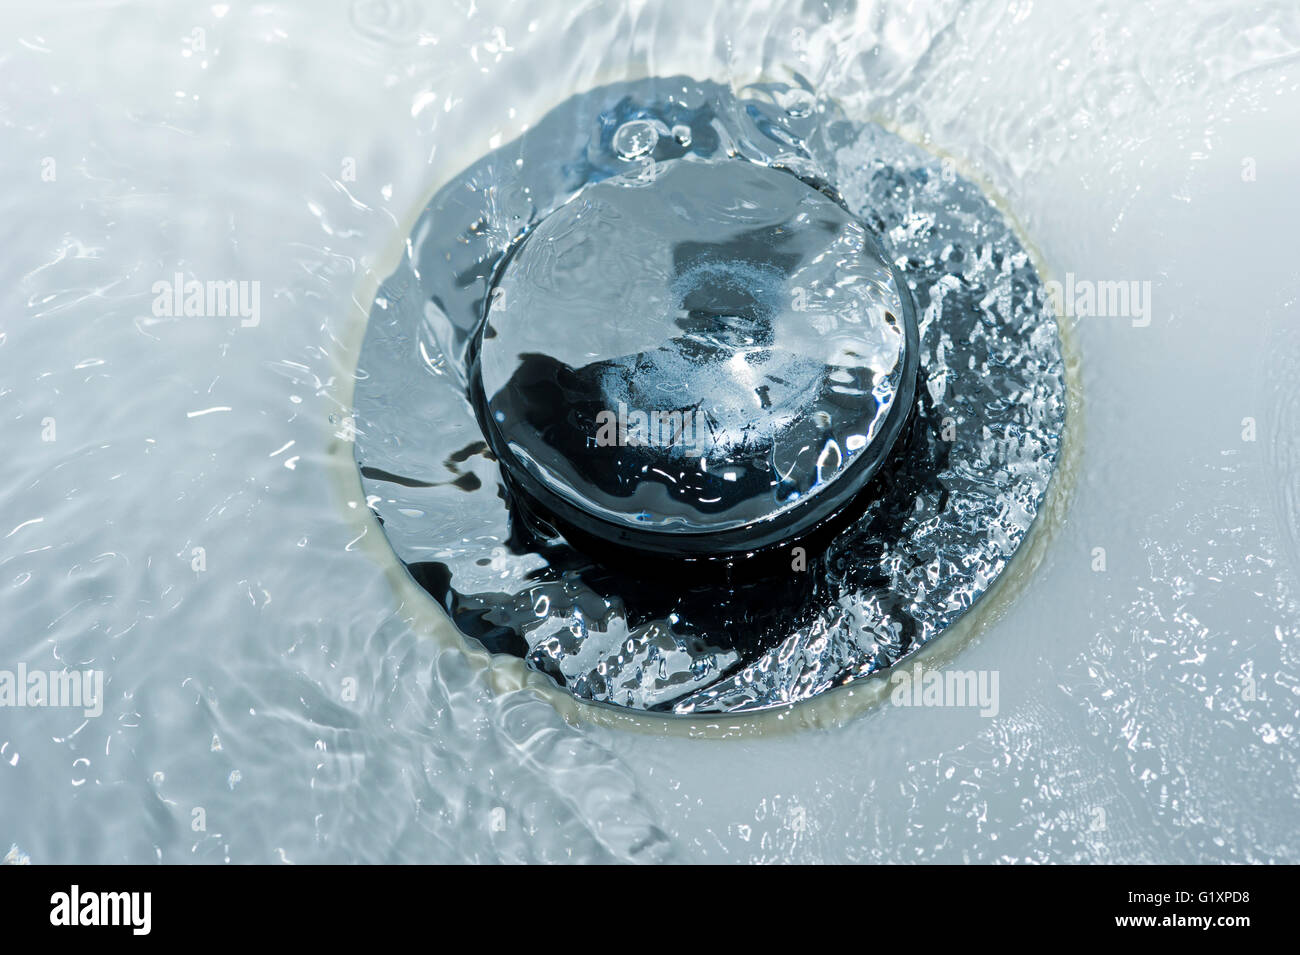 Water pouring down a sink plughole - Stock Image